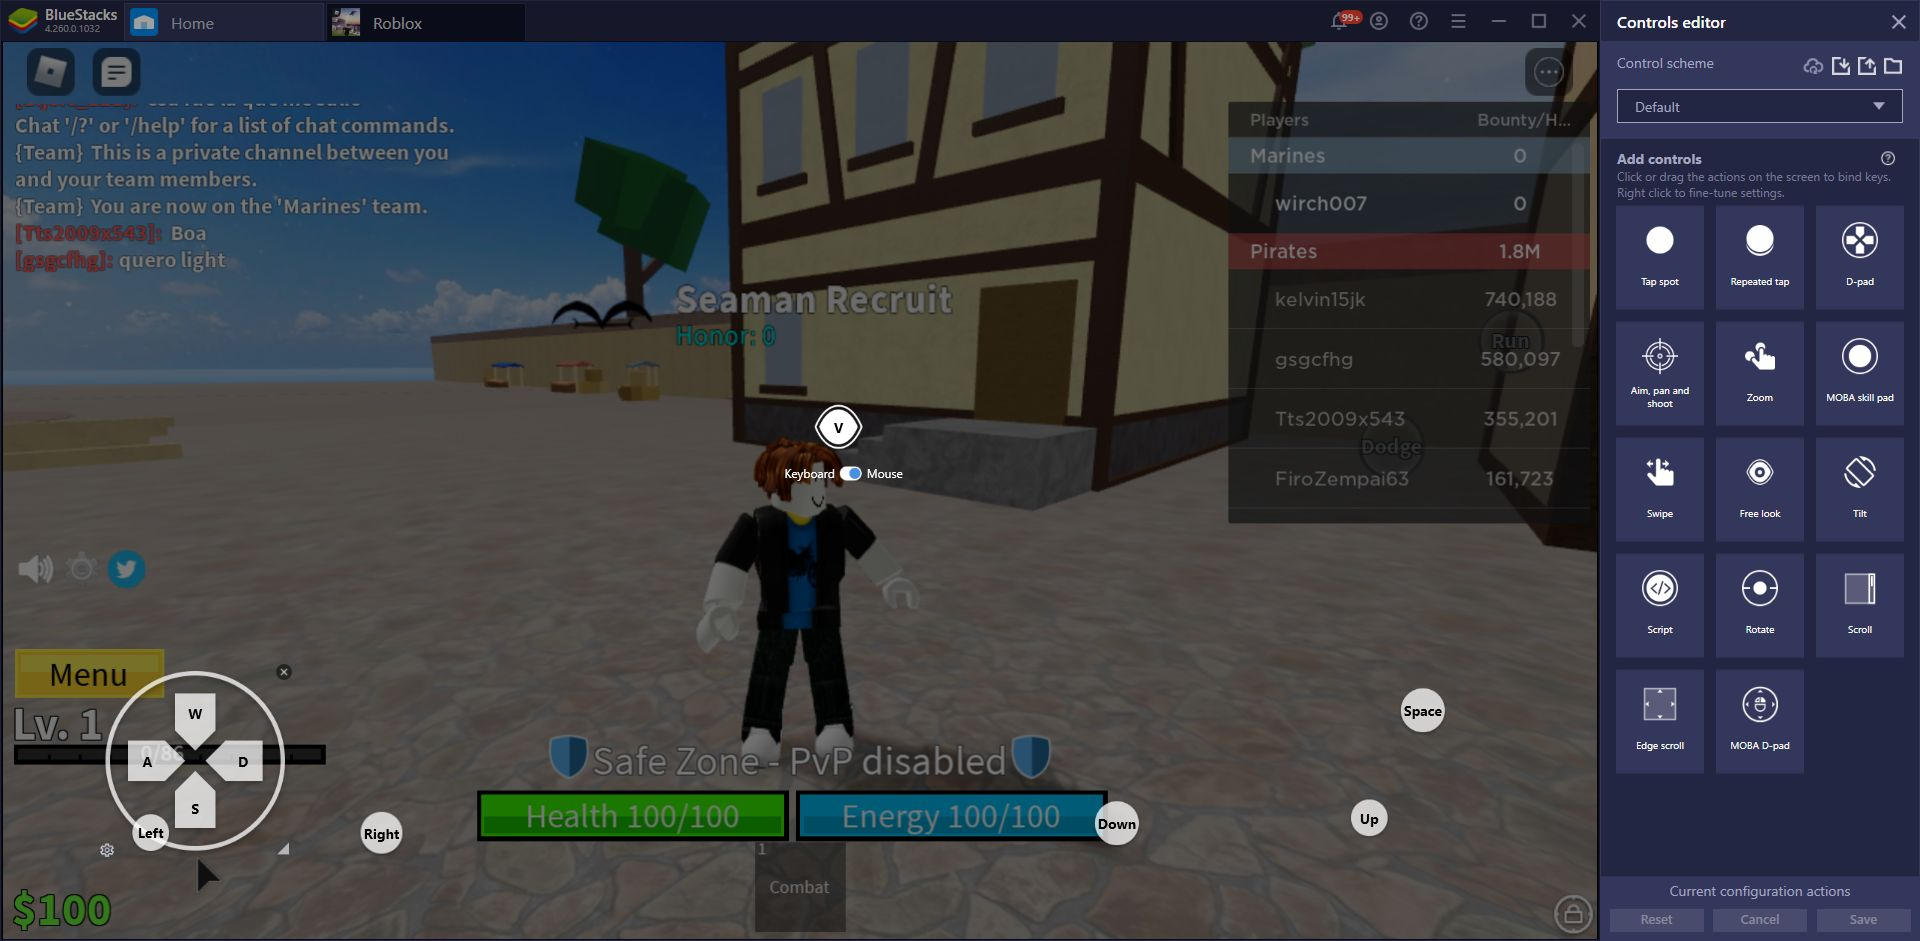 Roblox on PC – How to Use BlueStacks Tools When Playing Any Roblox Game